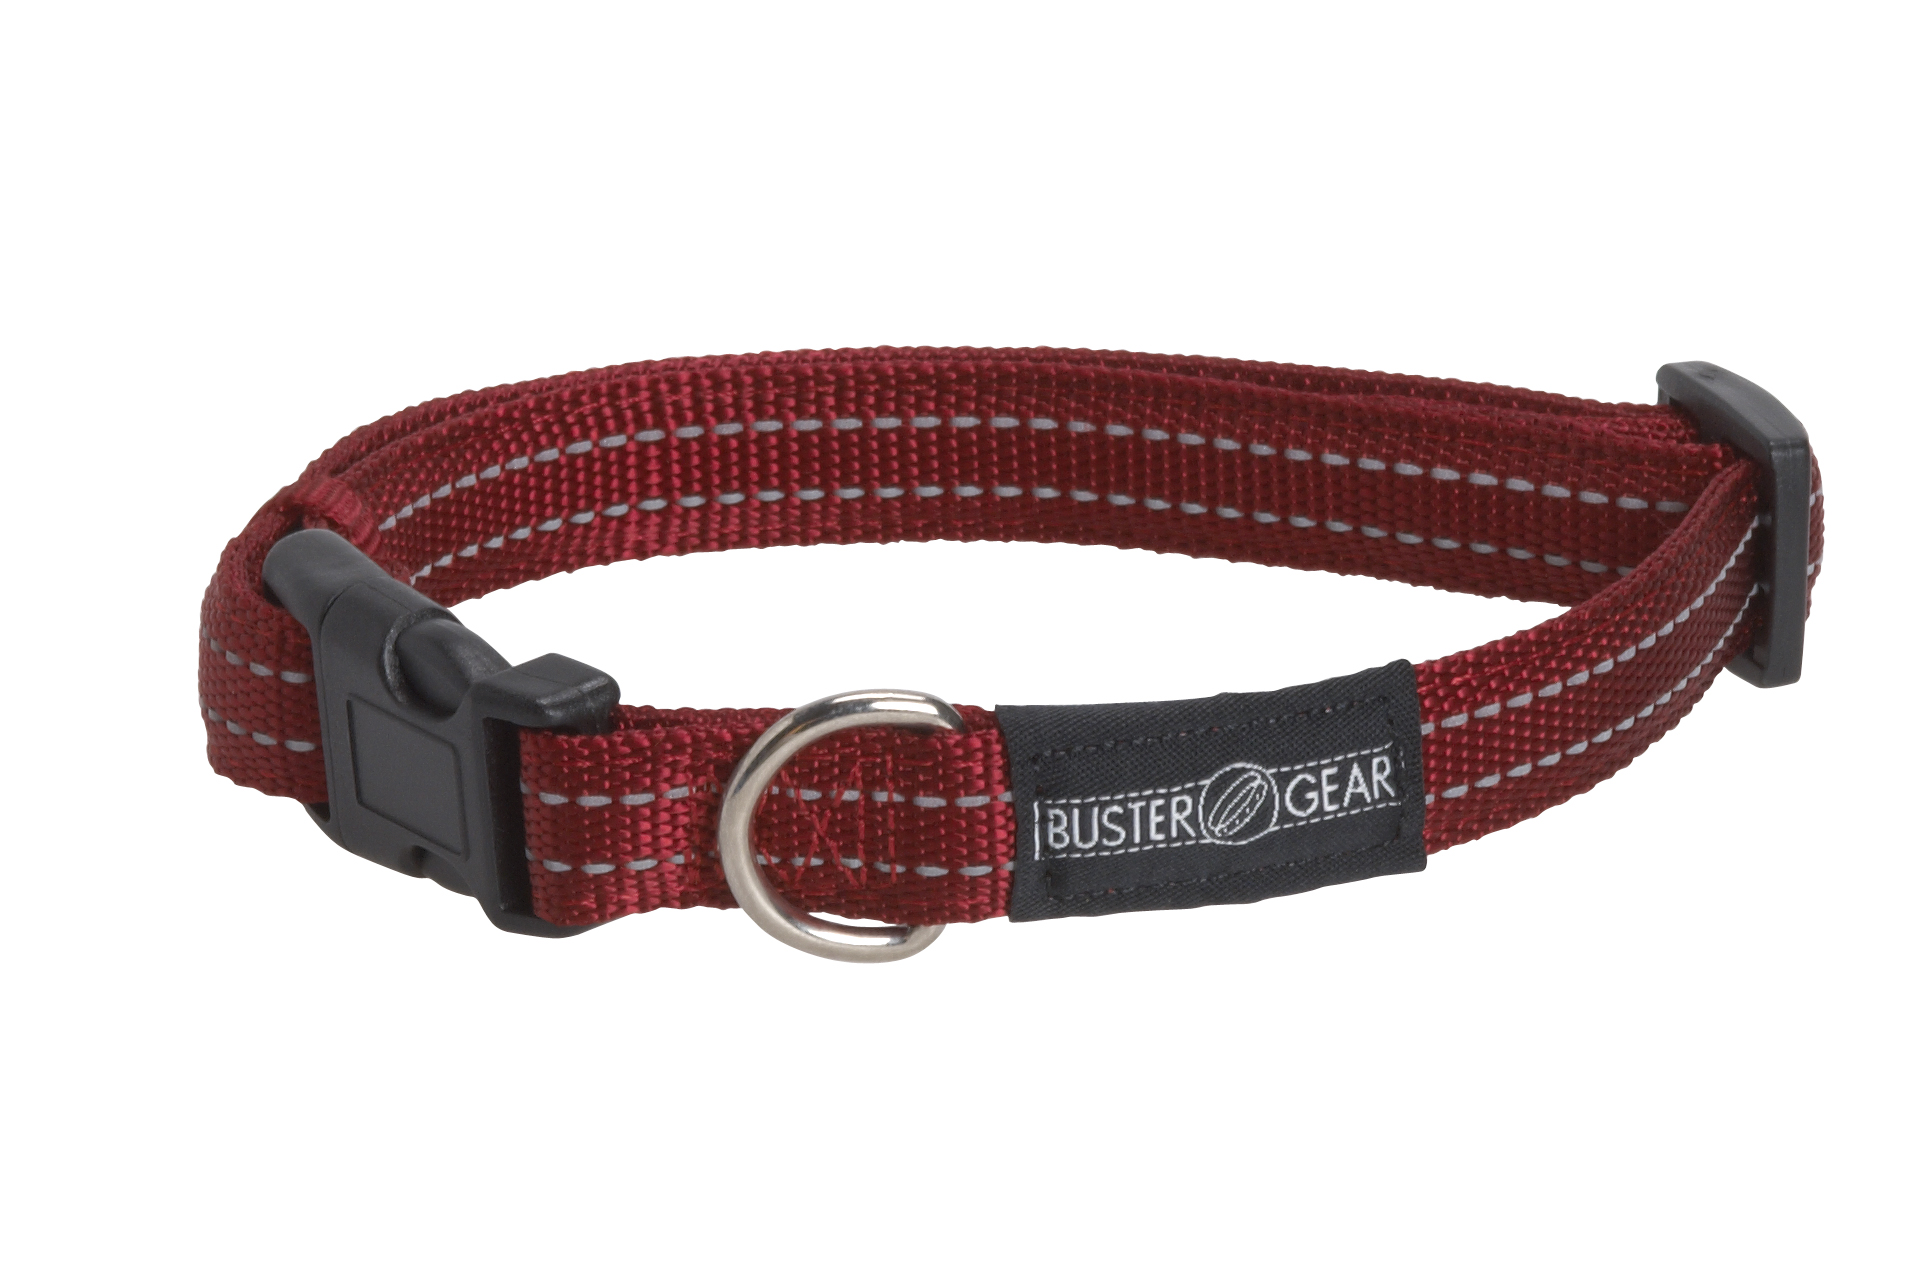 BUSTER reflective collar, adjustable, 25x450-650mm, red